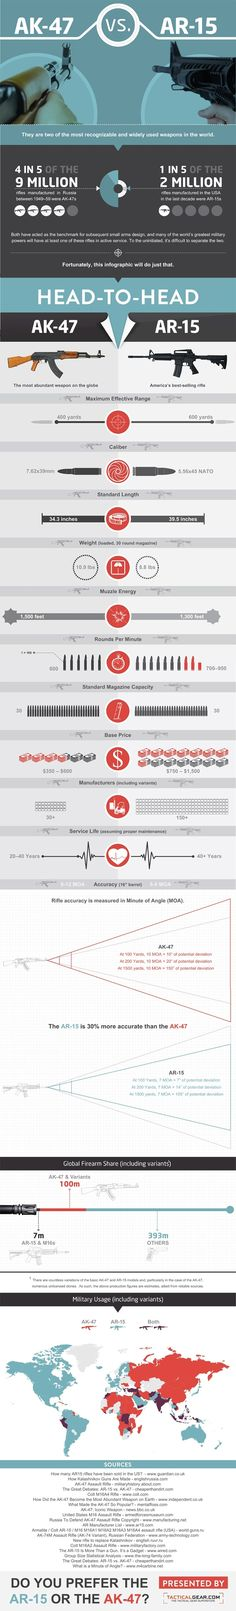 "Great infographic side-by-side comparison: ""AK-47 vs. AR-15: Which Is the Better Rifle?"""